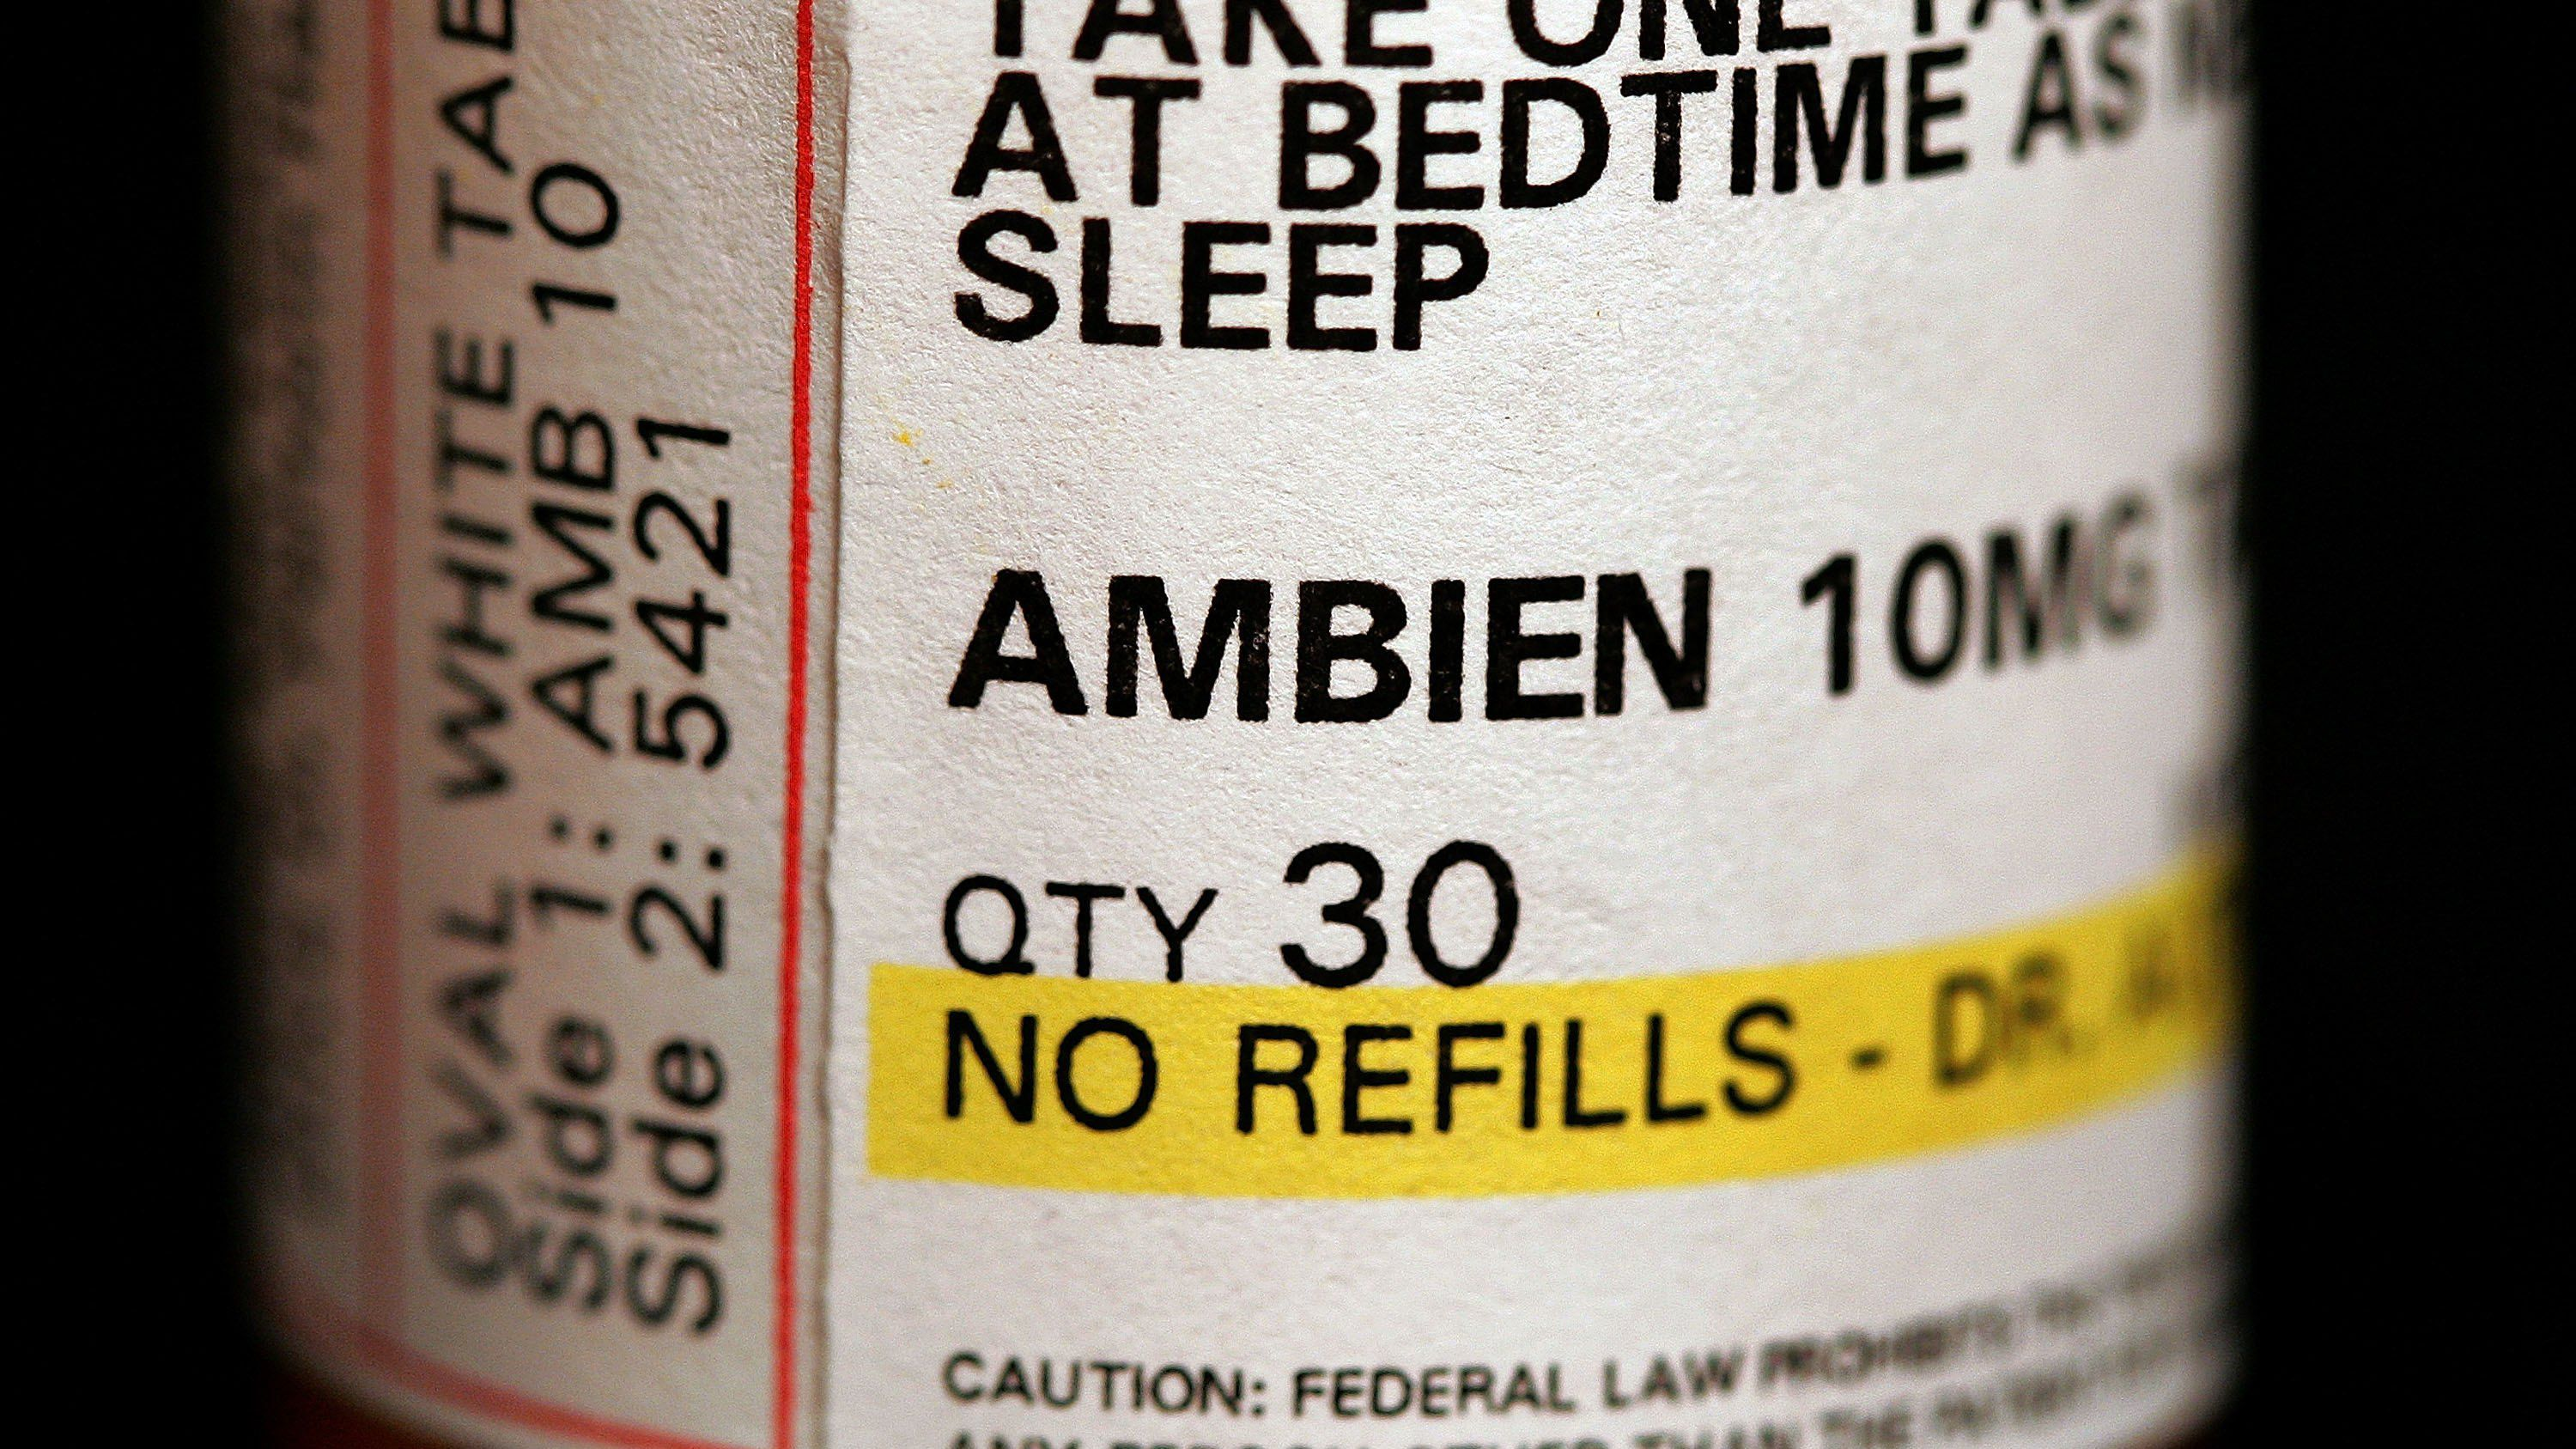 does ambien prevent rem sleep